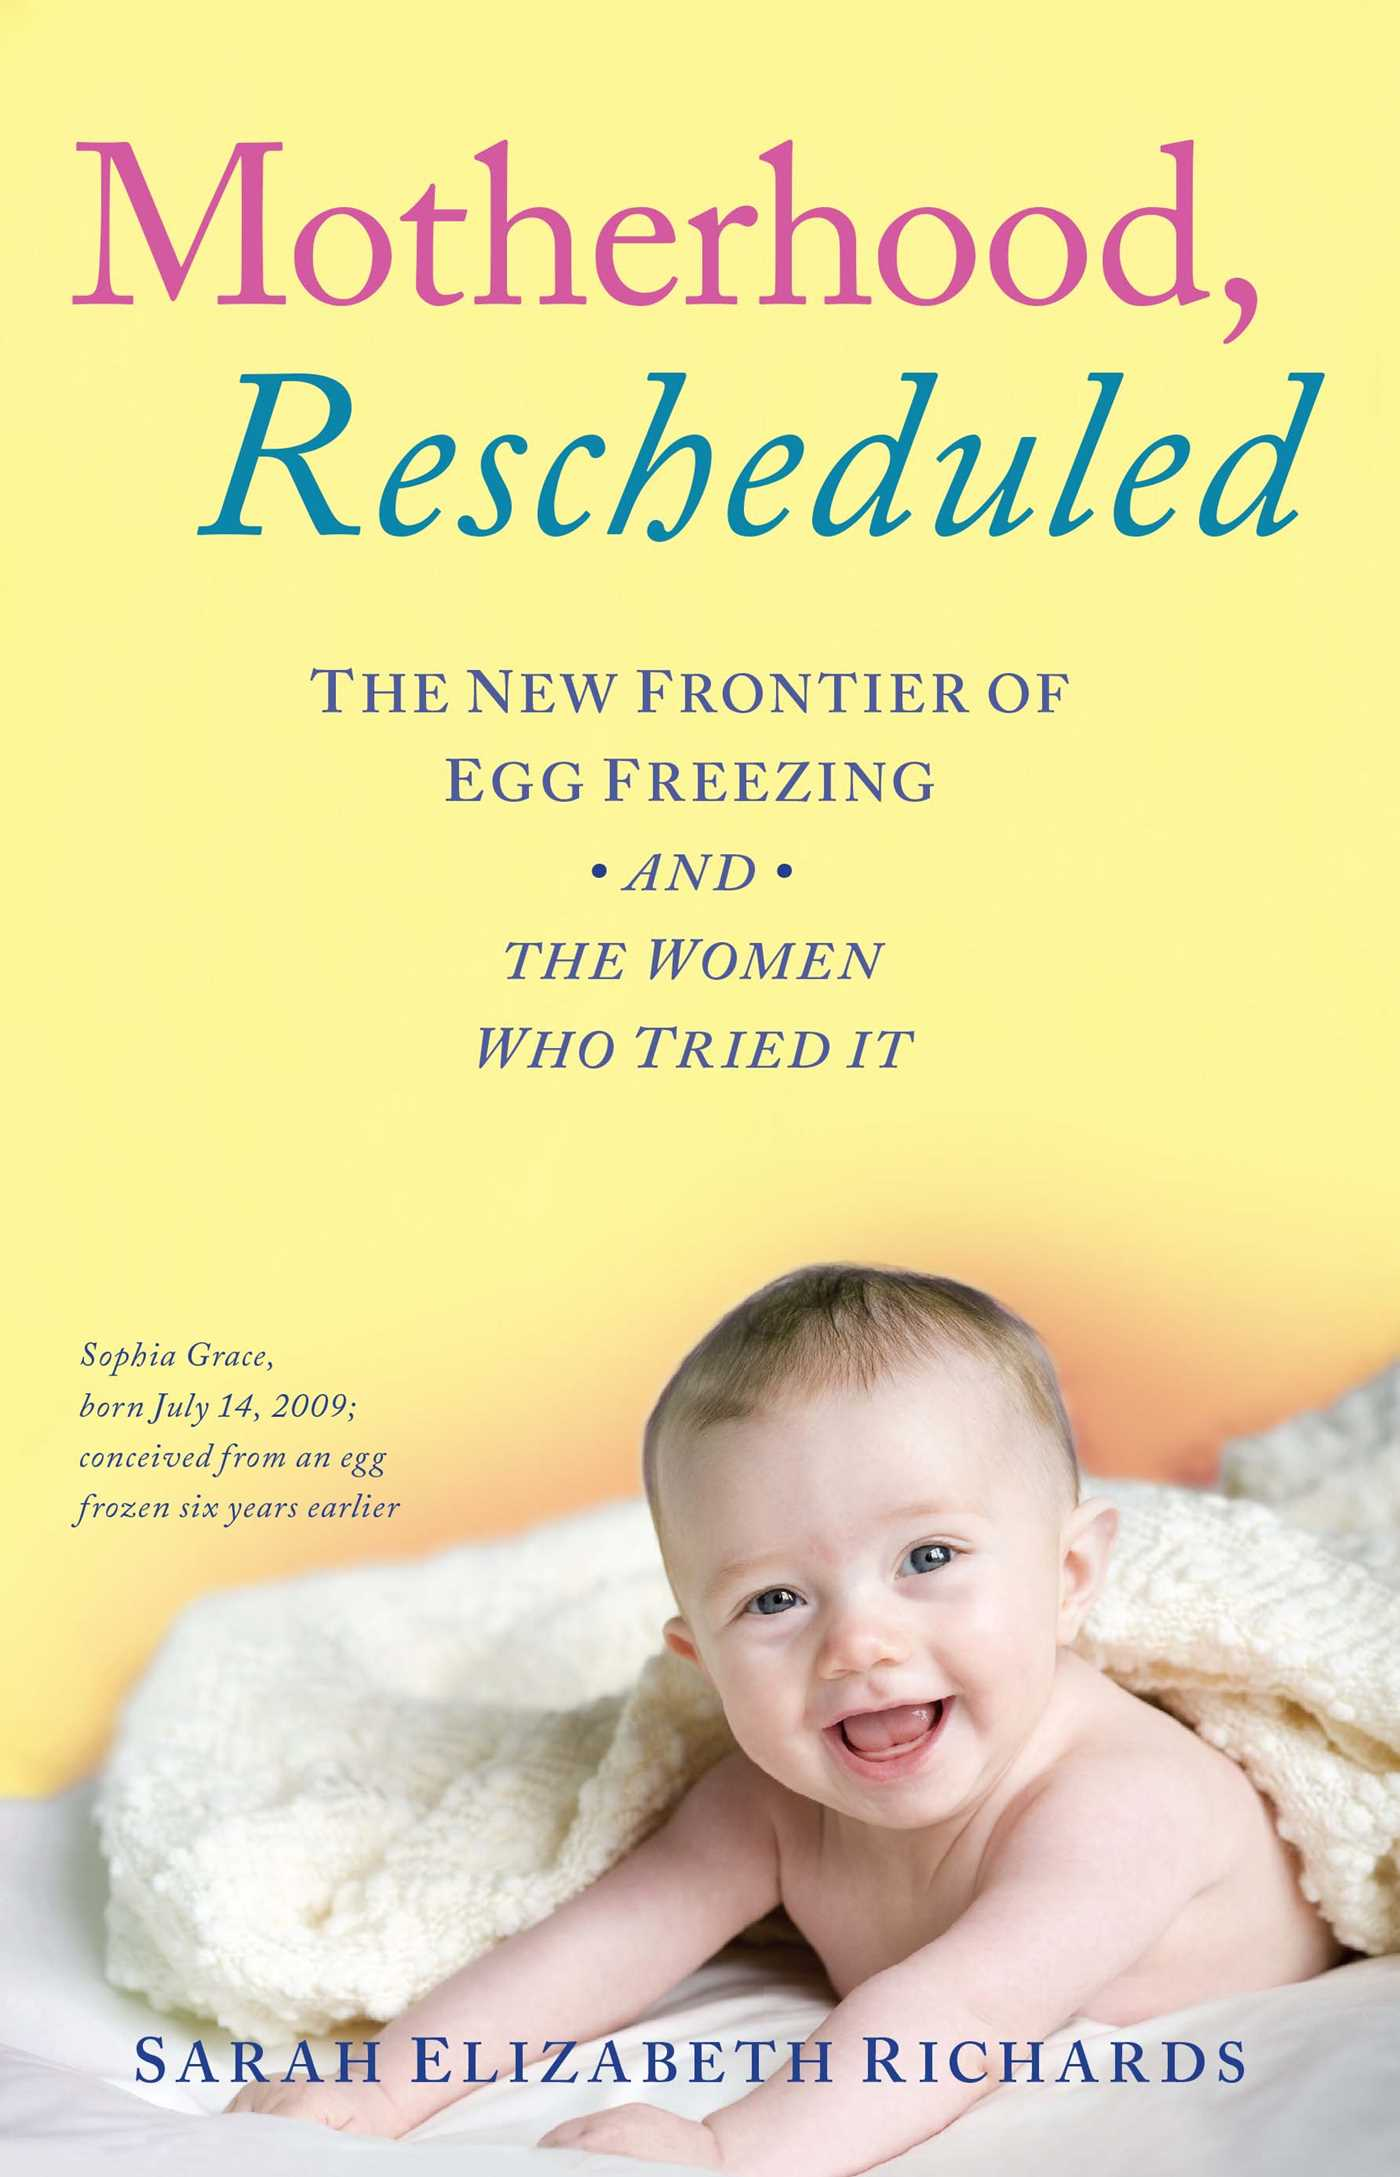 Motherhood-rescheduled-9781416567295_hr